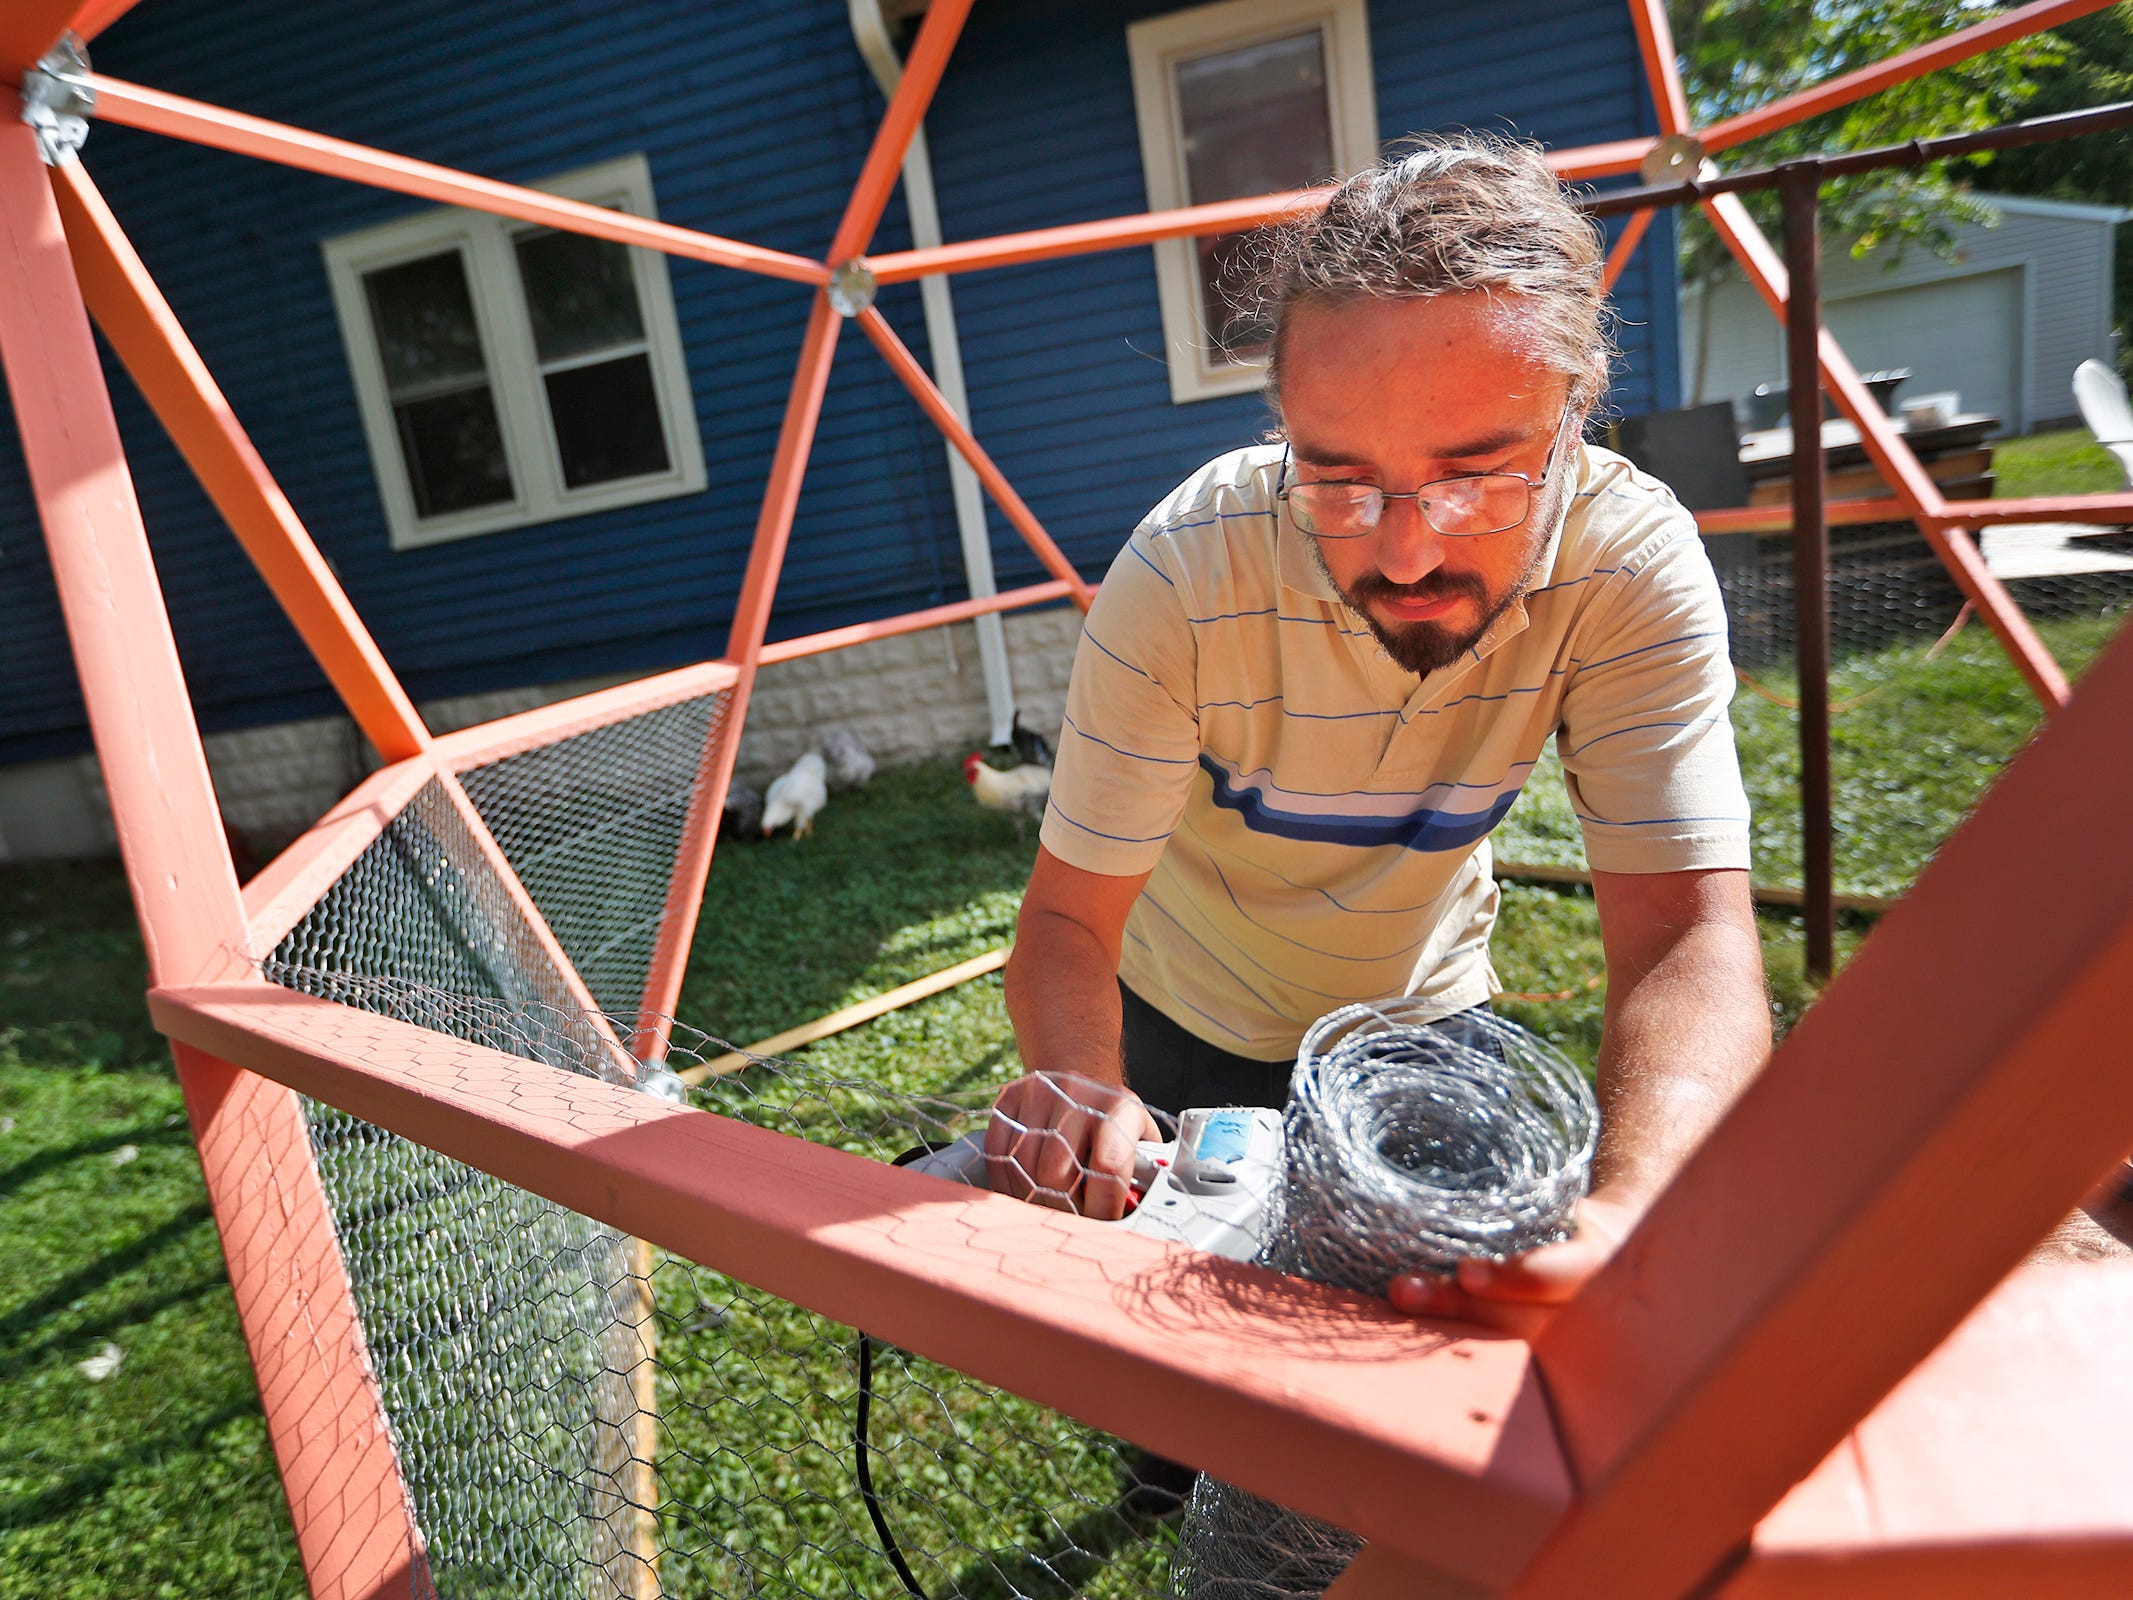 Elliot Thornton works to build a new chicken coop structure outside the Tube Factory Artspace, Tuesday, Oct. 9, 2018. In this same yard, the new Chicken Chapel of Love will be built.  The Vegas-style wedding chapel in the backyard of the Tube Factory Artspace will be complete with chickens.  You can bring your own minister or ask one of the ordained Big Car staff to officiate.  The chapel also will be a meditation center that connect the art world to the earth.  Also on the site are a bee sanctuary, raised gardens, and chicken coops.